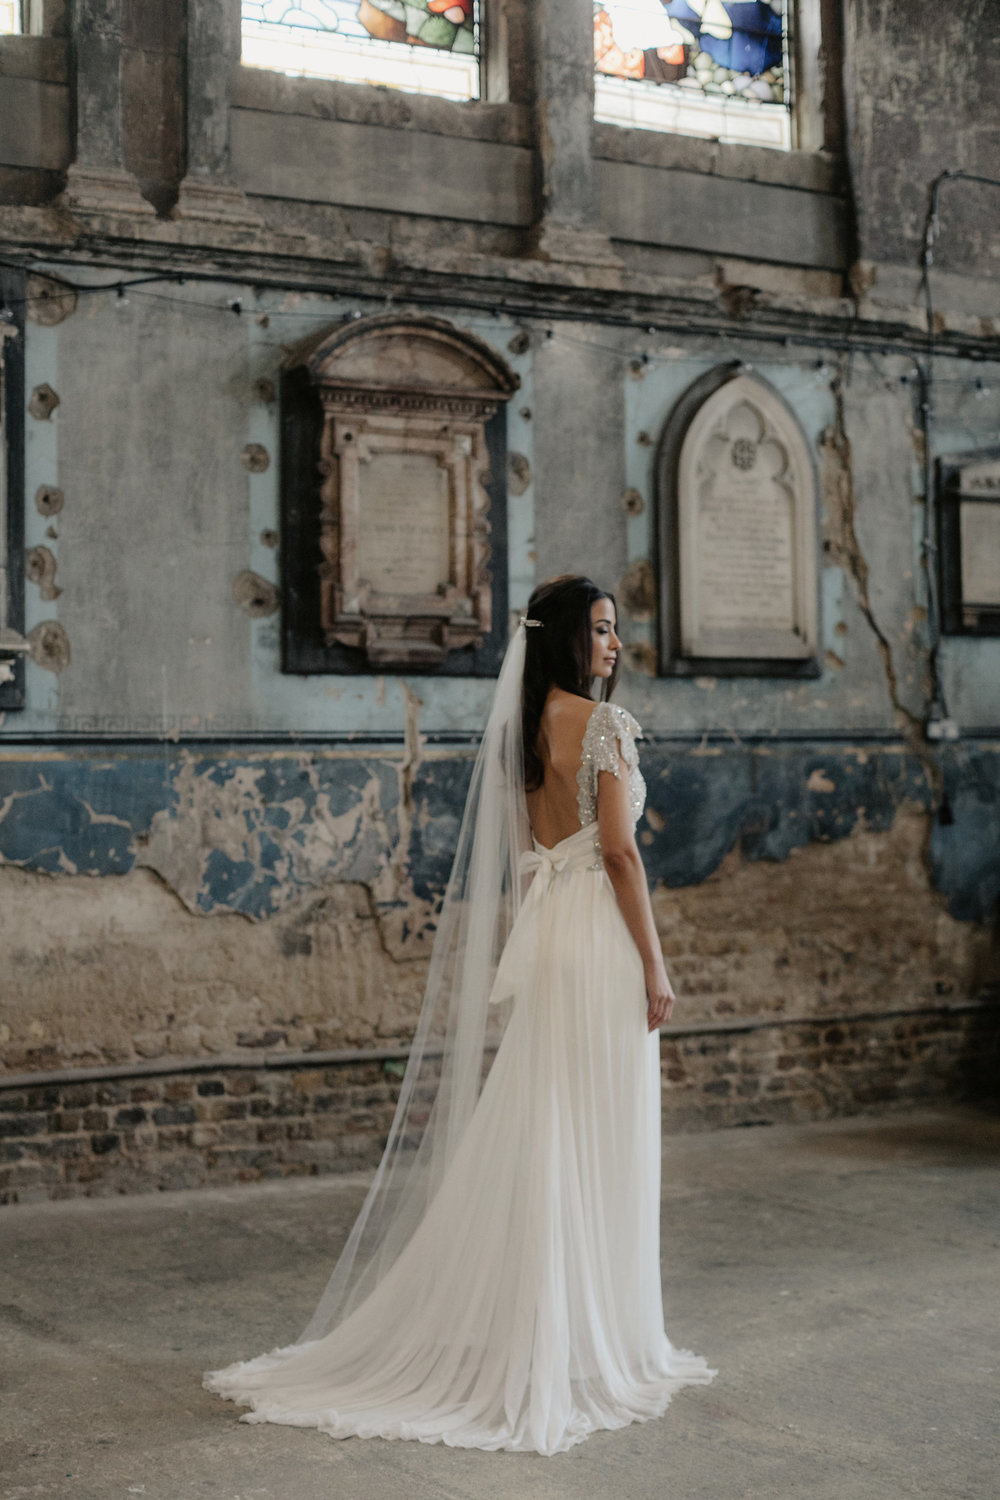 Anna Campbell Annabella Dress | Vintage-inspired embellished wedding dress